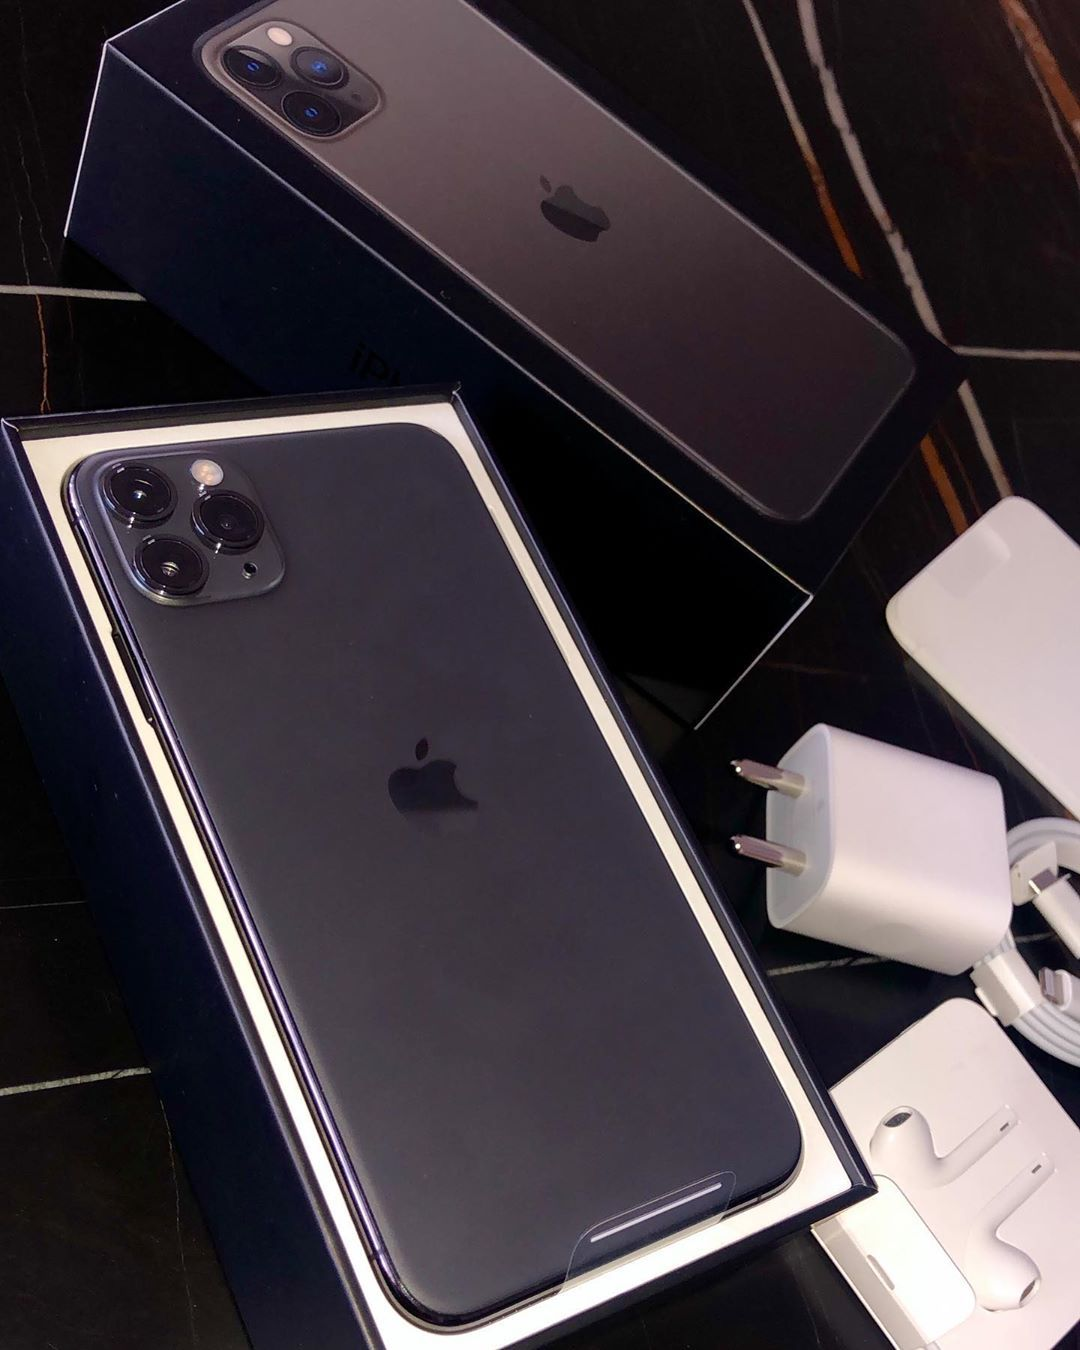 Iphone 11 Pro Max Space Gray Iphone Iphone11 Iphone11promax Apple Spacegray Unboxi Apple Iphone Accessories Apple Smartphone Iphone Phone Cases